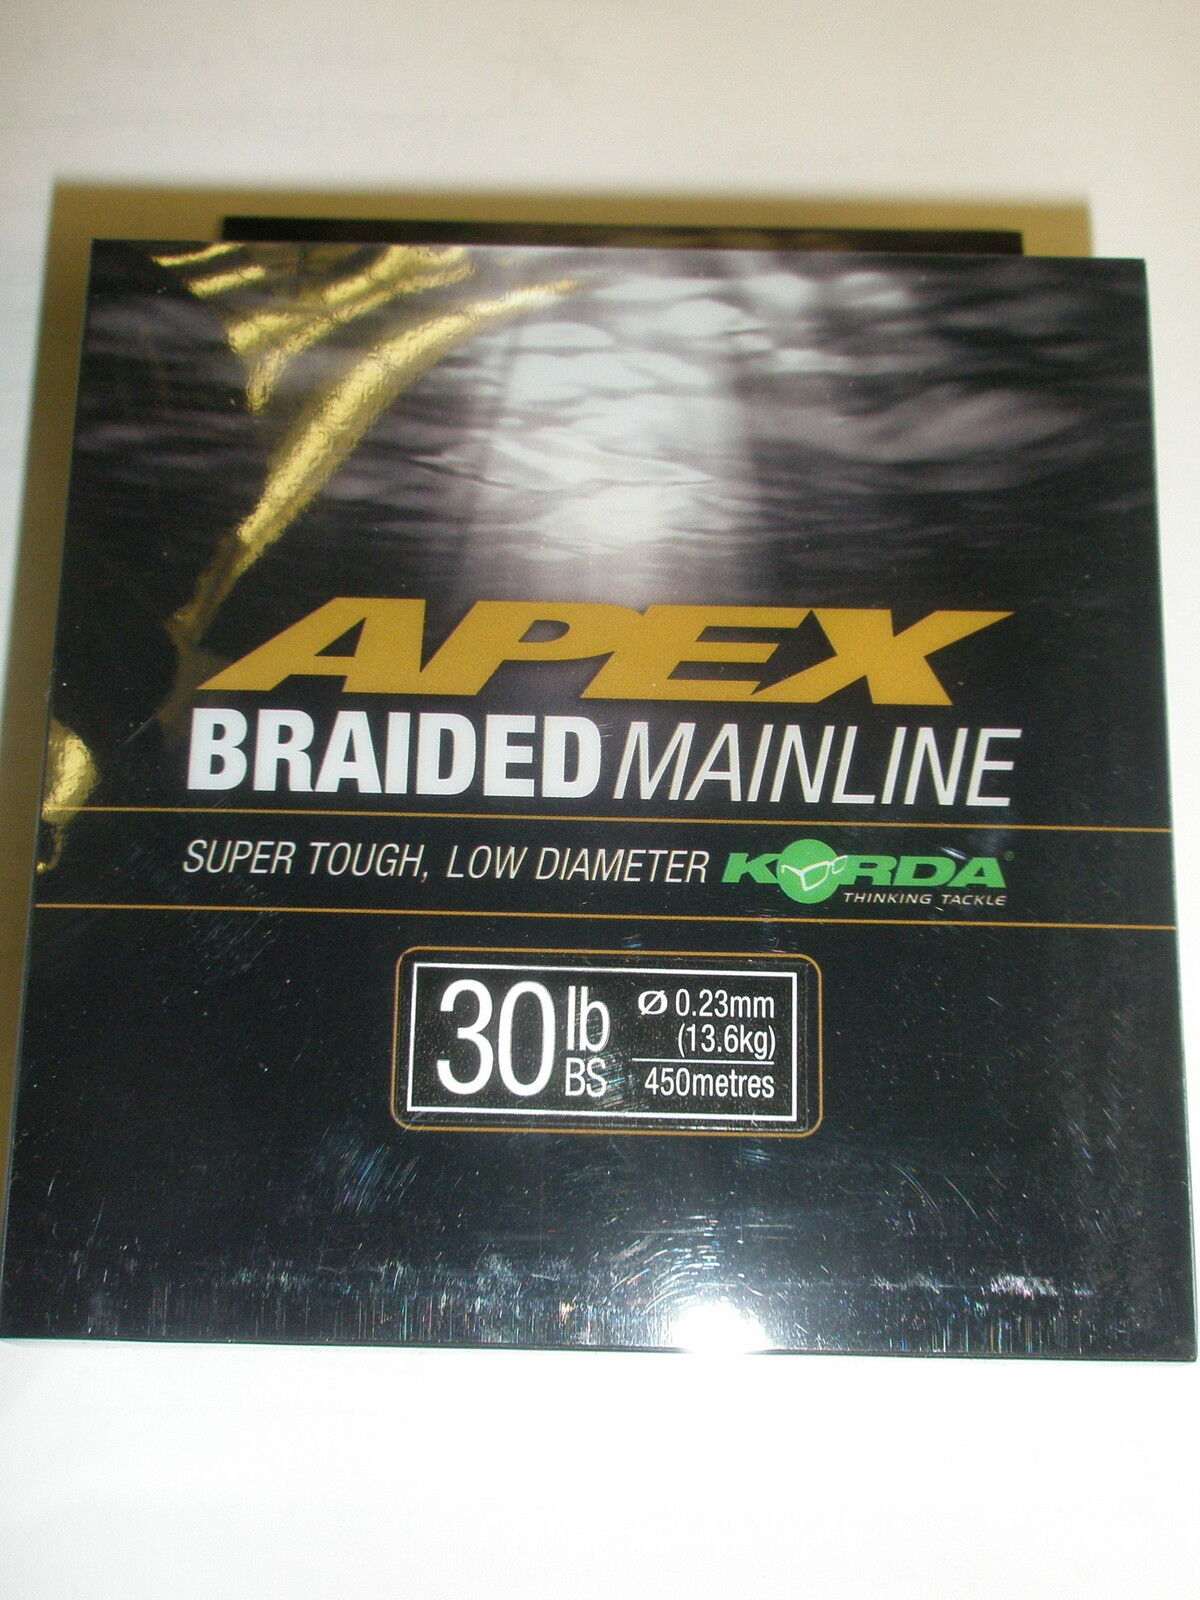 Korda Apex Braided Mainline ALL VARIETIES Carp fishing tackle